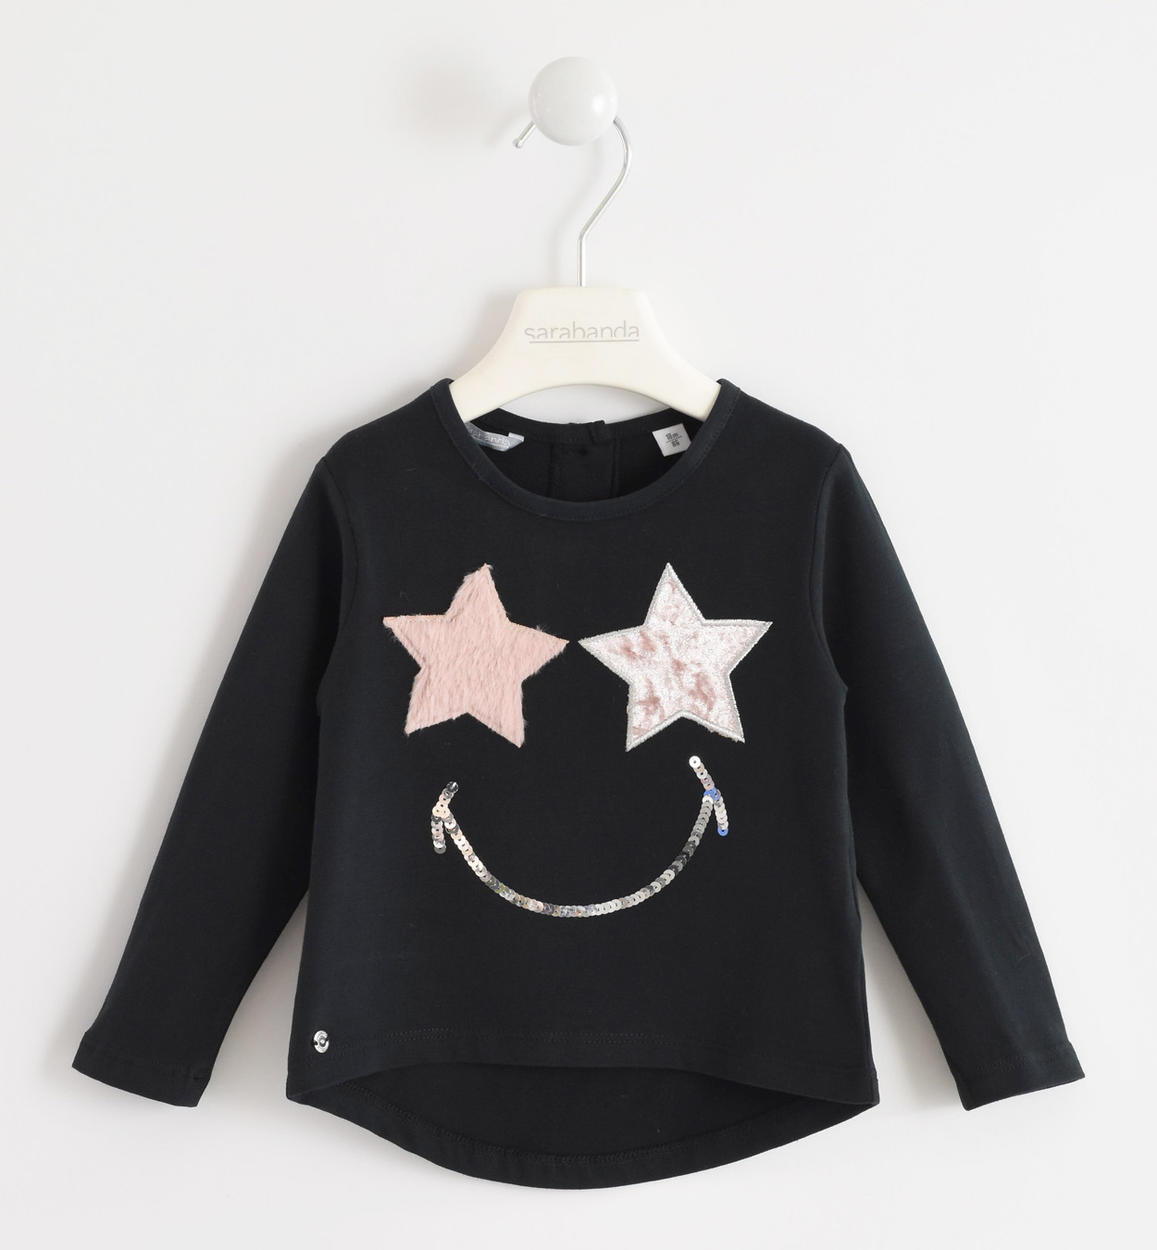 70594e8198 Nice crewneck t-shirt of warm 100% cotton jersey for baby girls from 6  months to 7 years Sarabanda